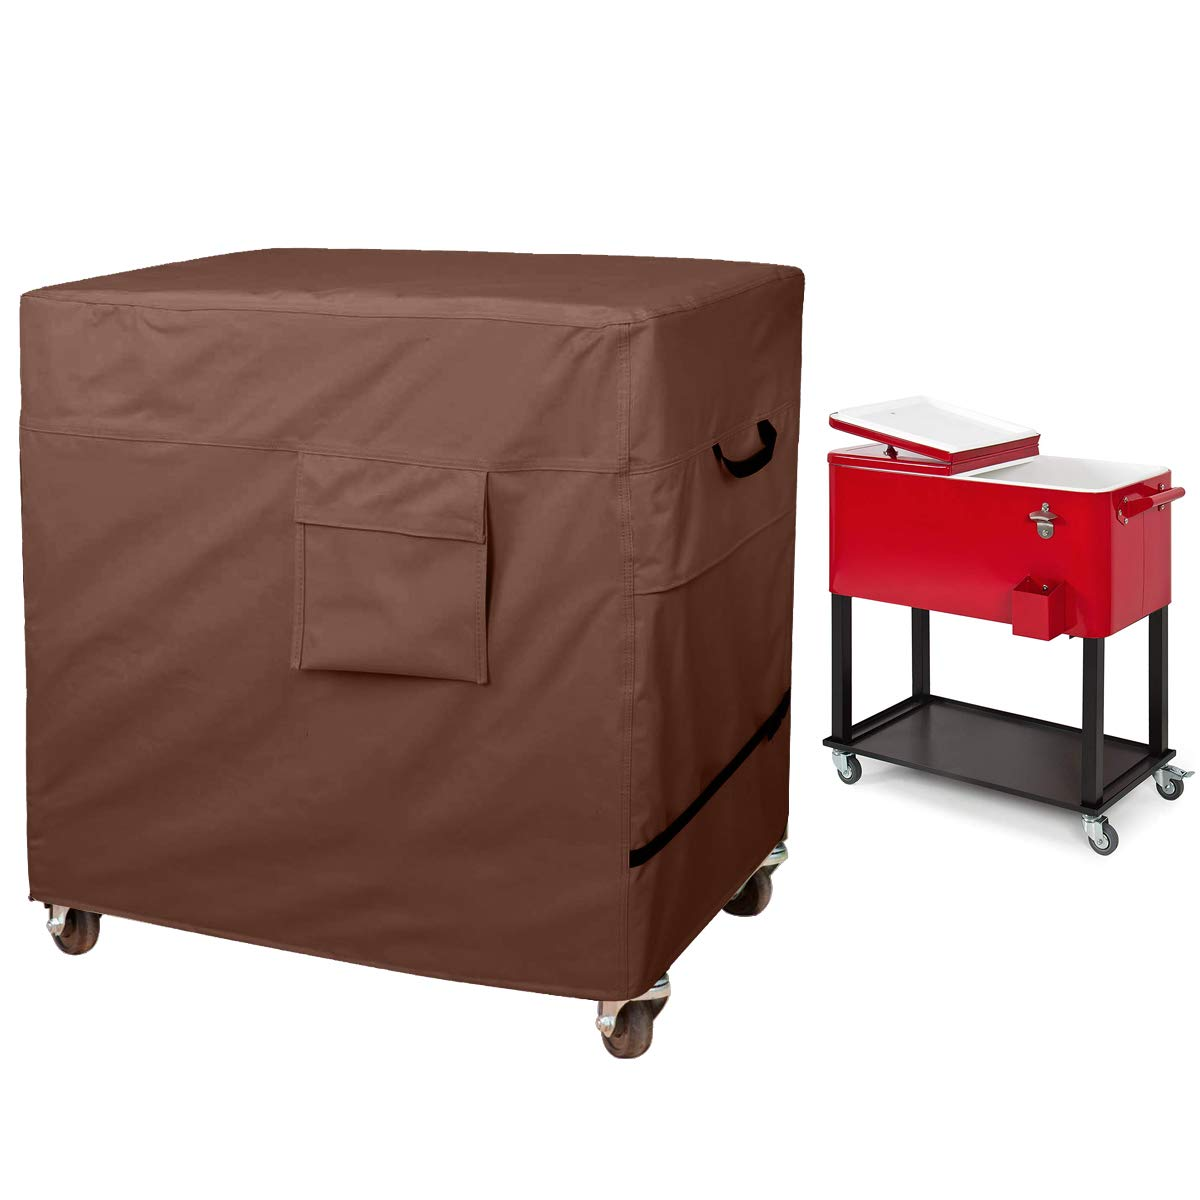 80 Quart Rolling Ice Chest Cover, Patio Party Bar Drink Cooler Cart Cloth Cover, Patio Cooler Protective Cover, Cooler Cart Dust Cover, Waterproof And Universal Size (43''L x 22''W x 32''H, Brown) by Hersent